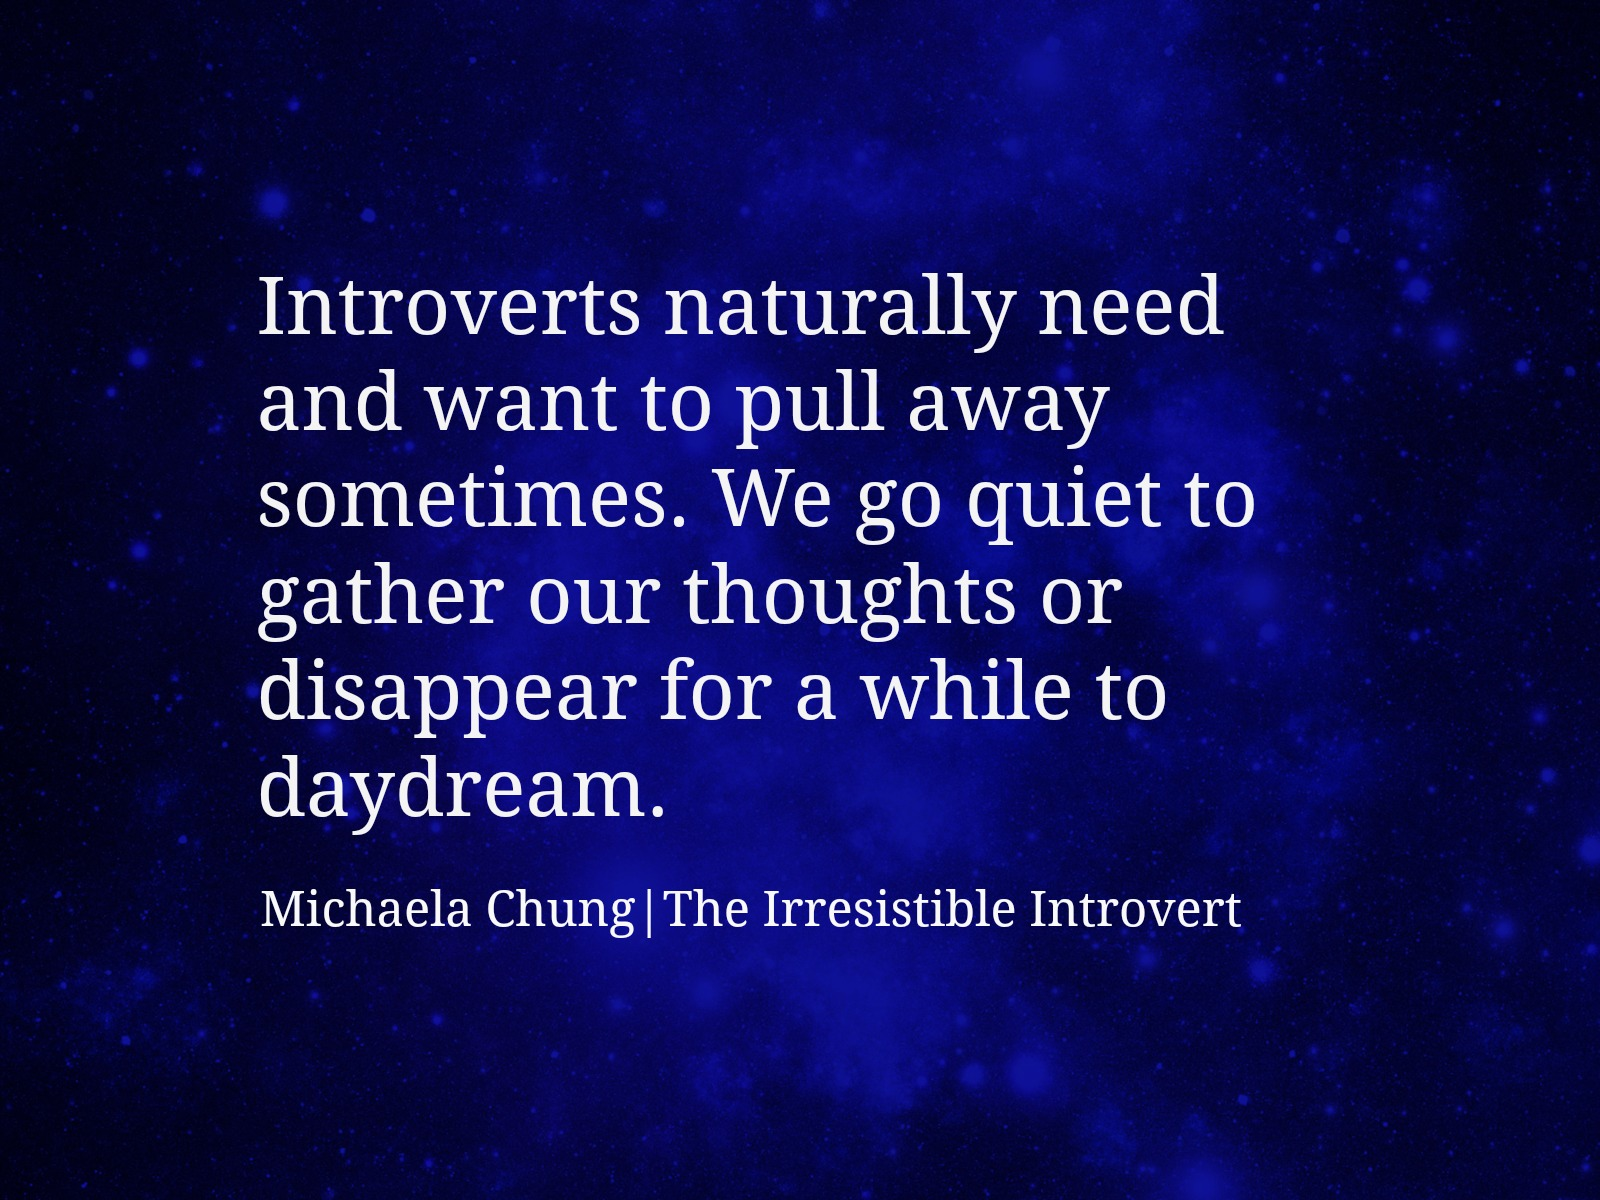 dating tips for introverts people quotes free image